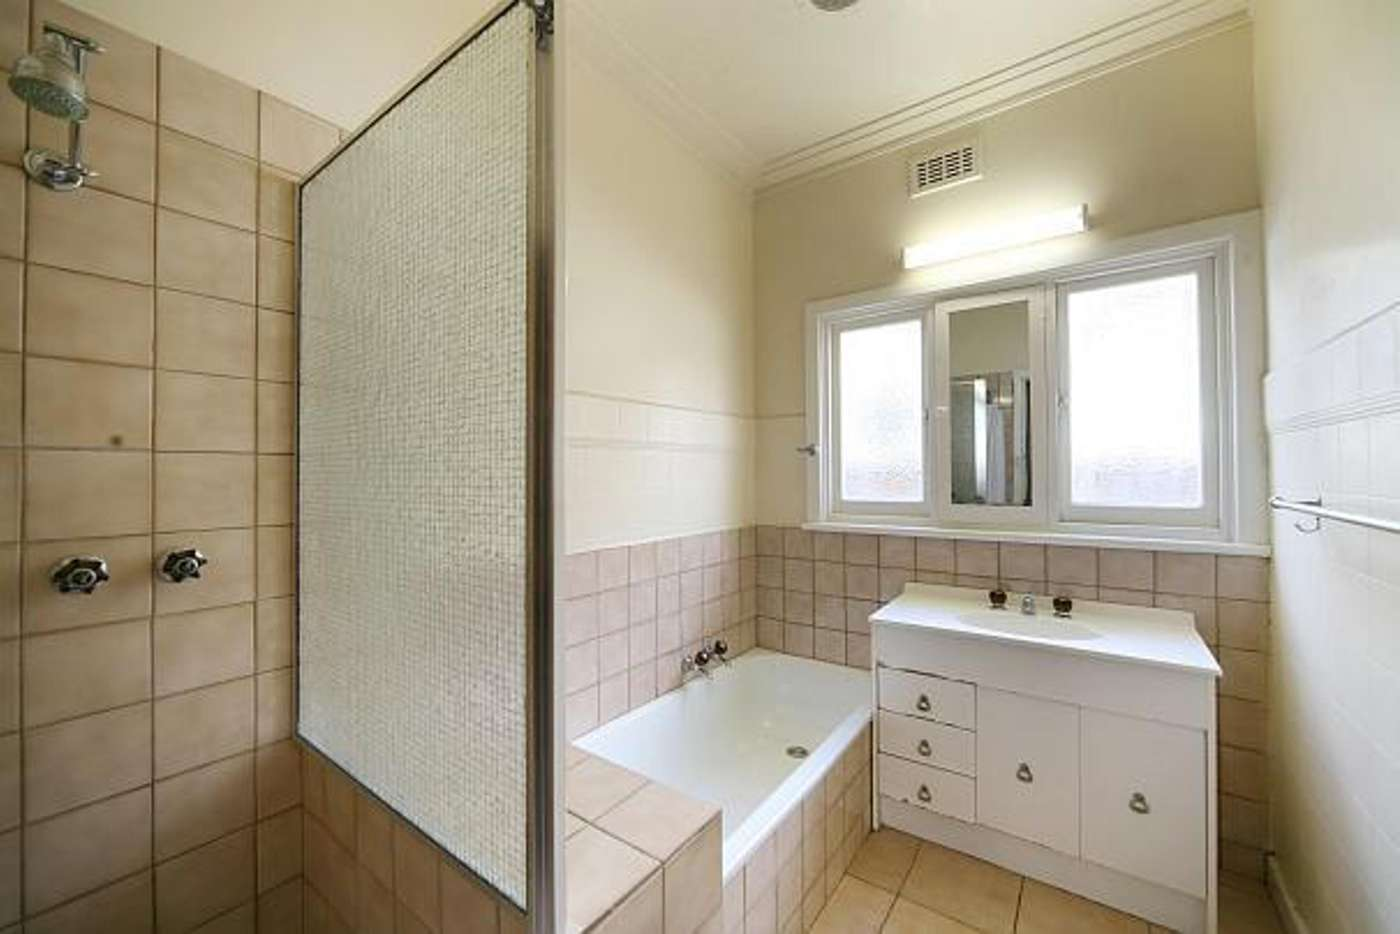 Sixth view of Homely house listing, 31 Renown Street, Bentleigh VIC 3204